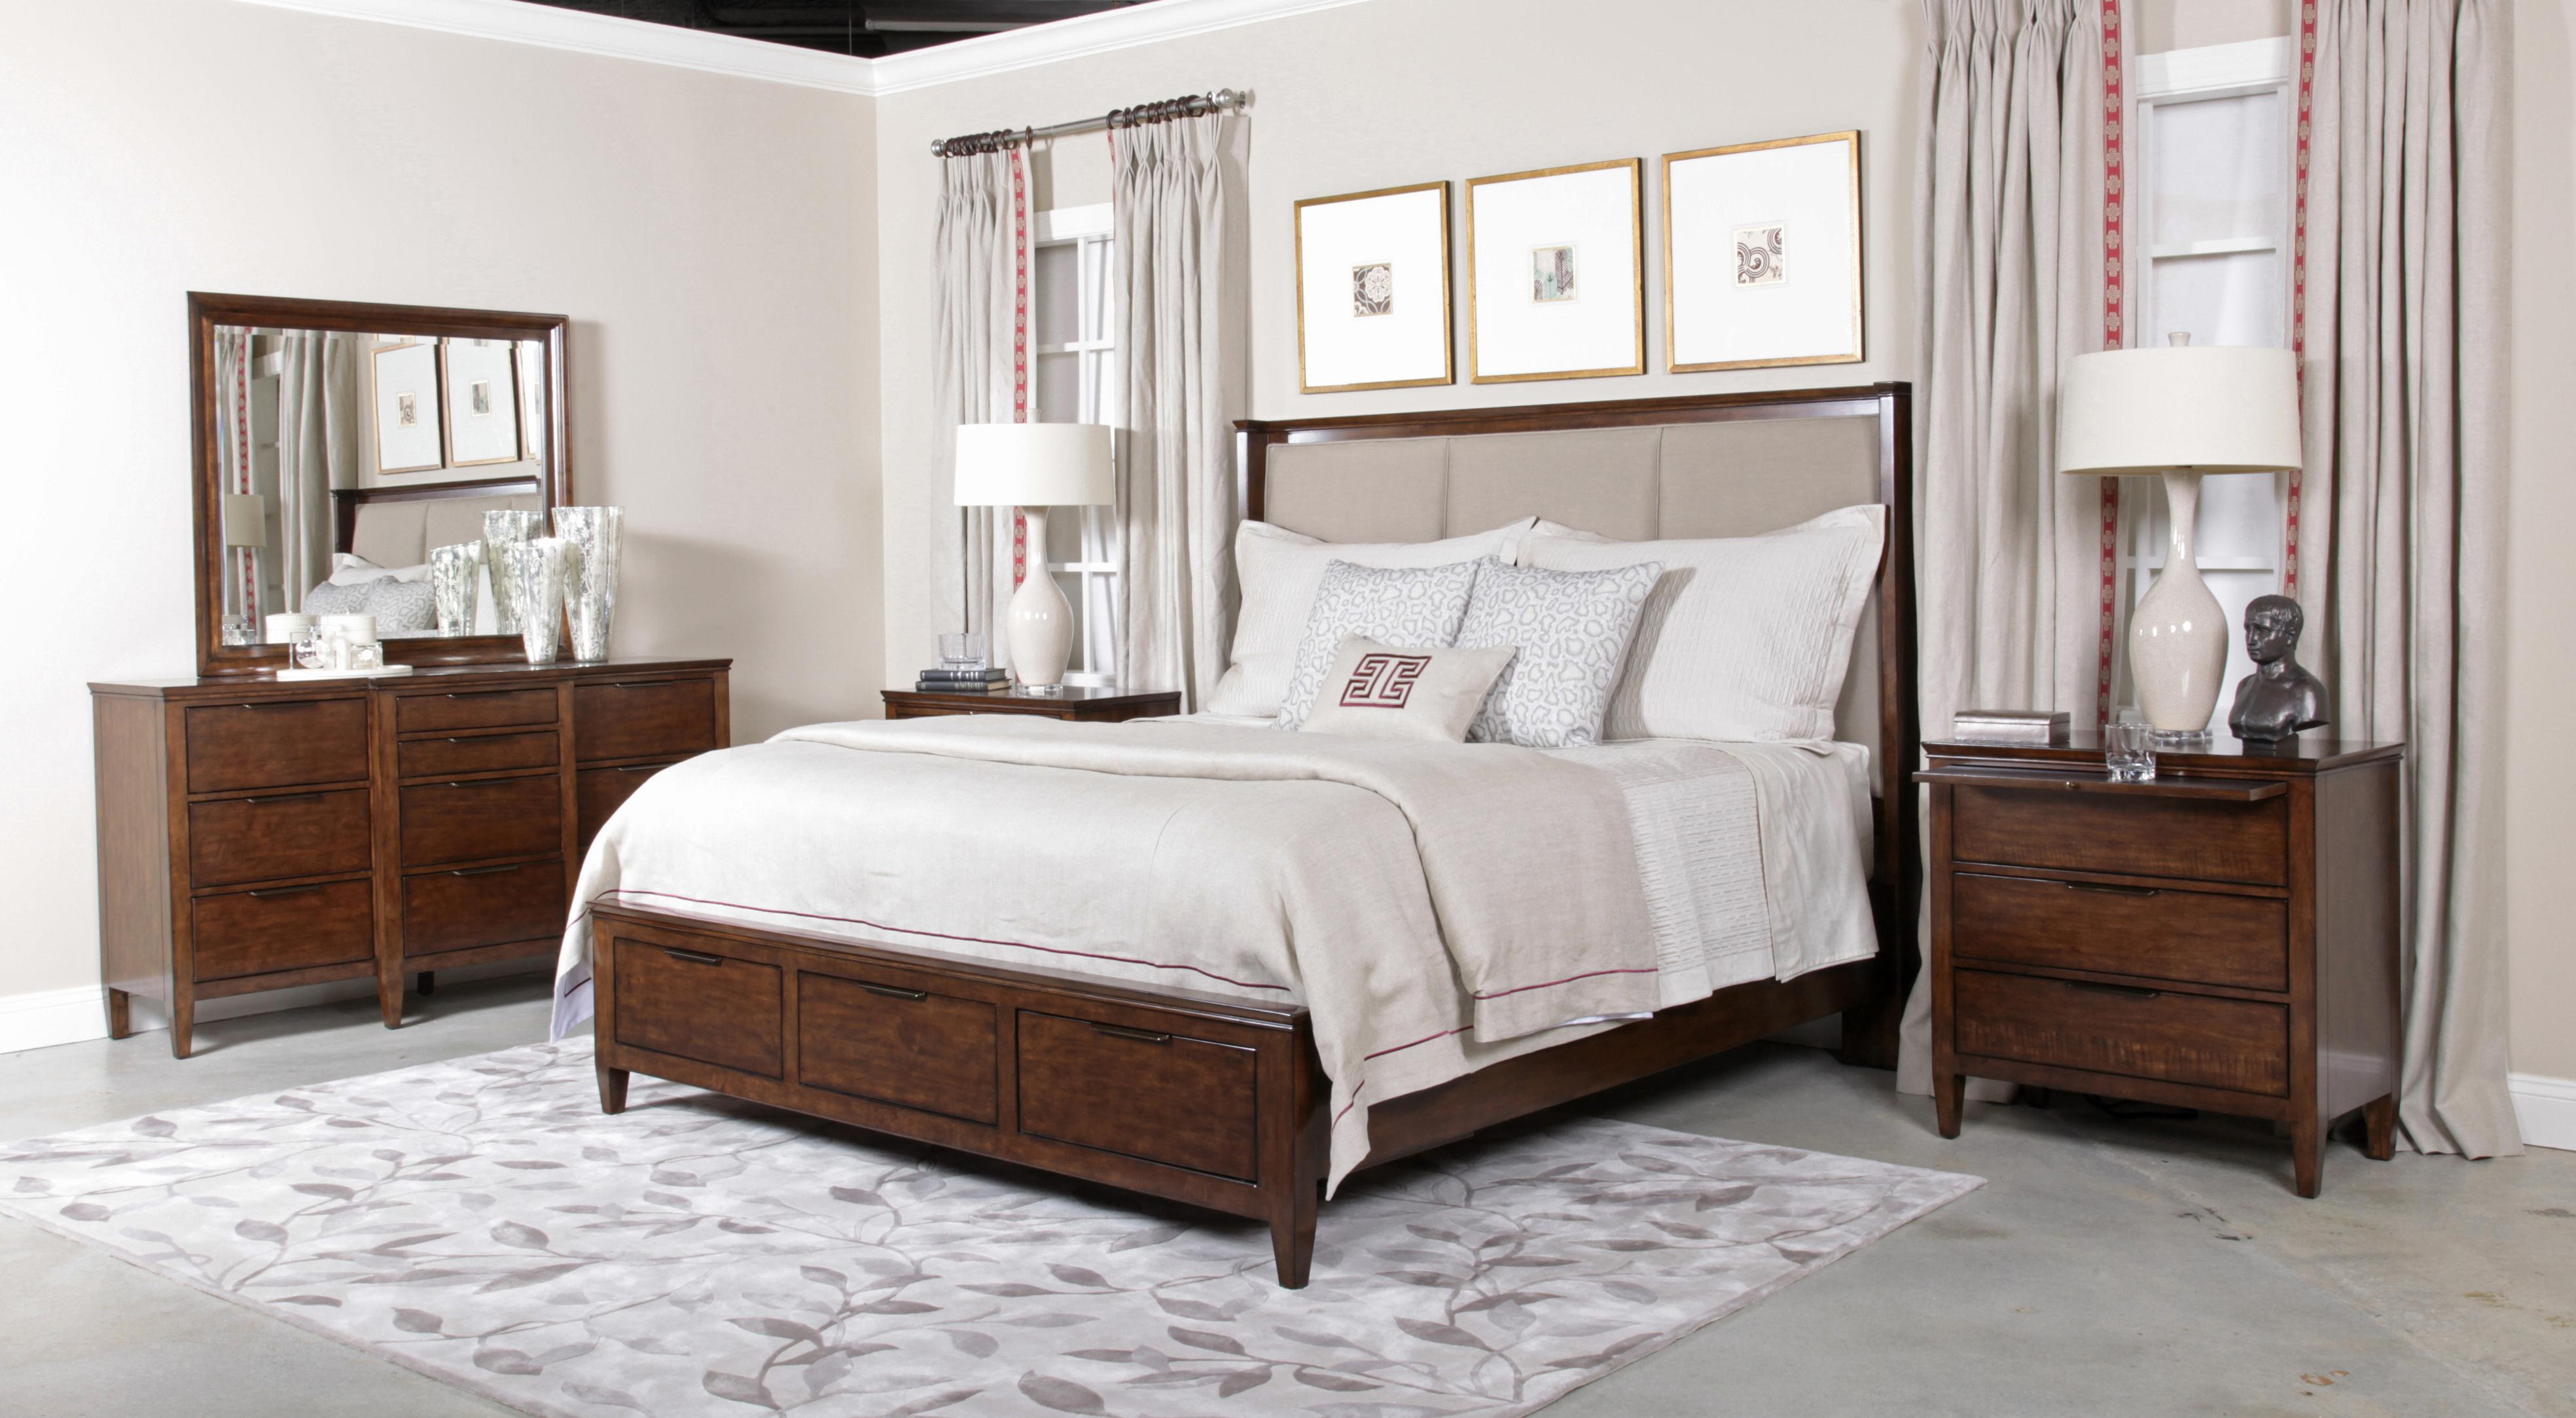 Kincaid Bedroom Set Kincaid Bedroom Furniture Kincaid Brookside